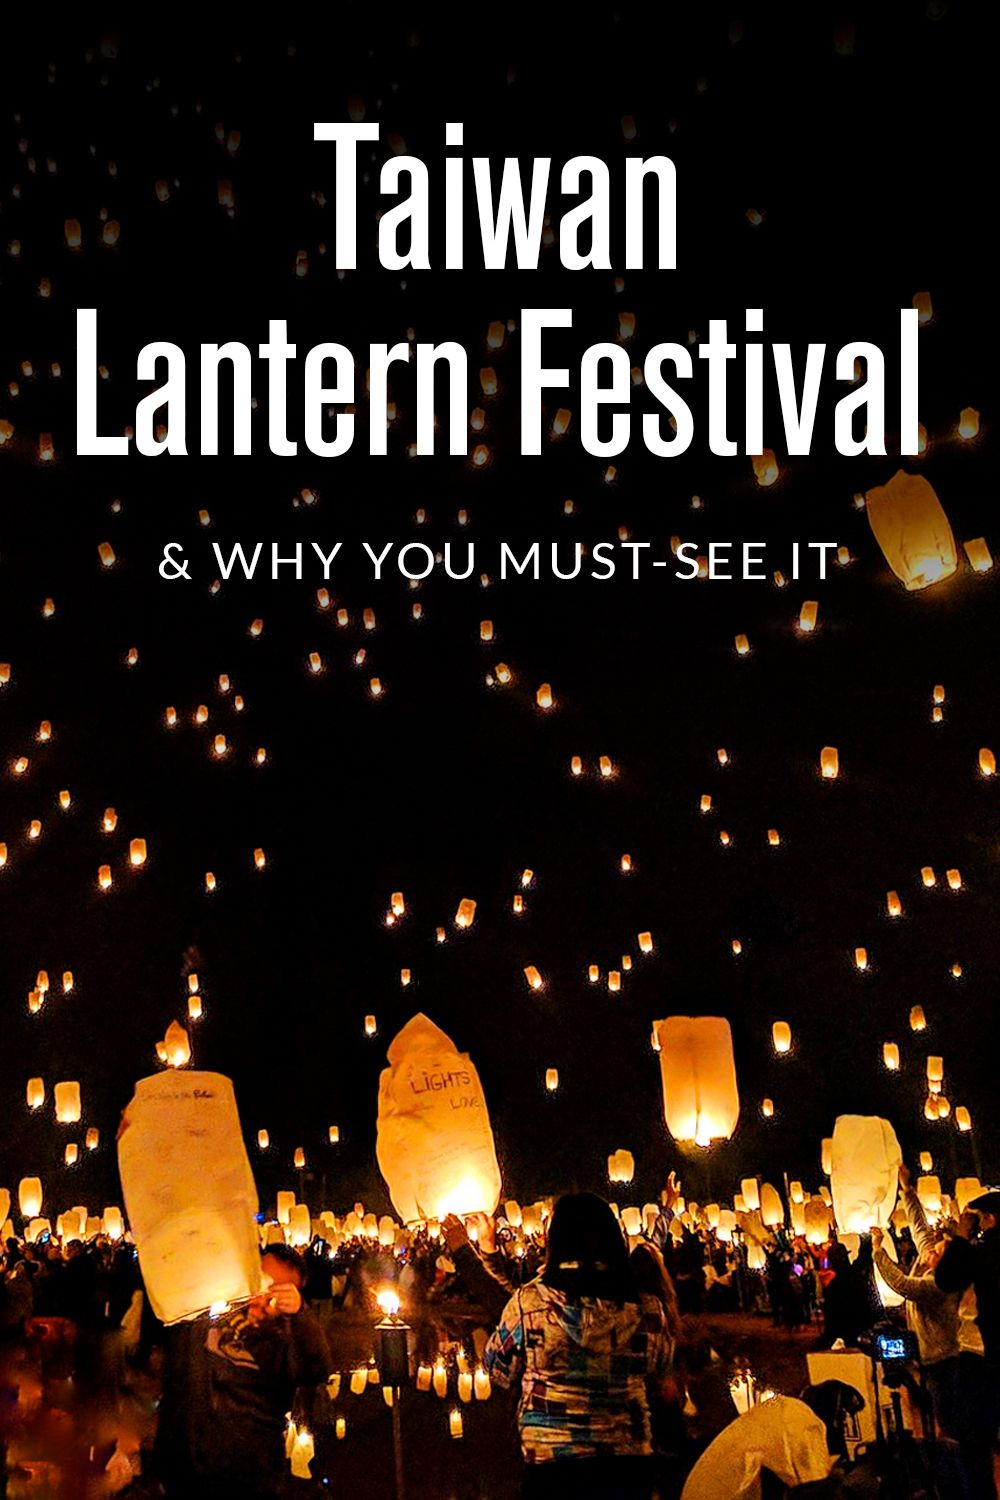 Why You Should Attend the Taiwan Lantern Festival in 2018